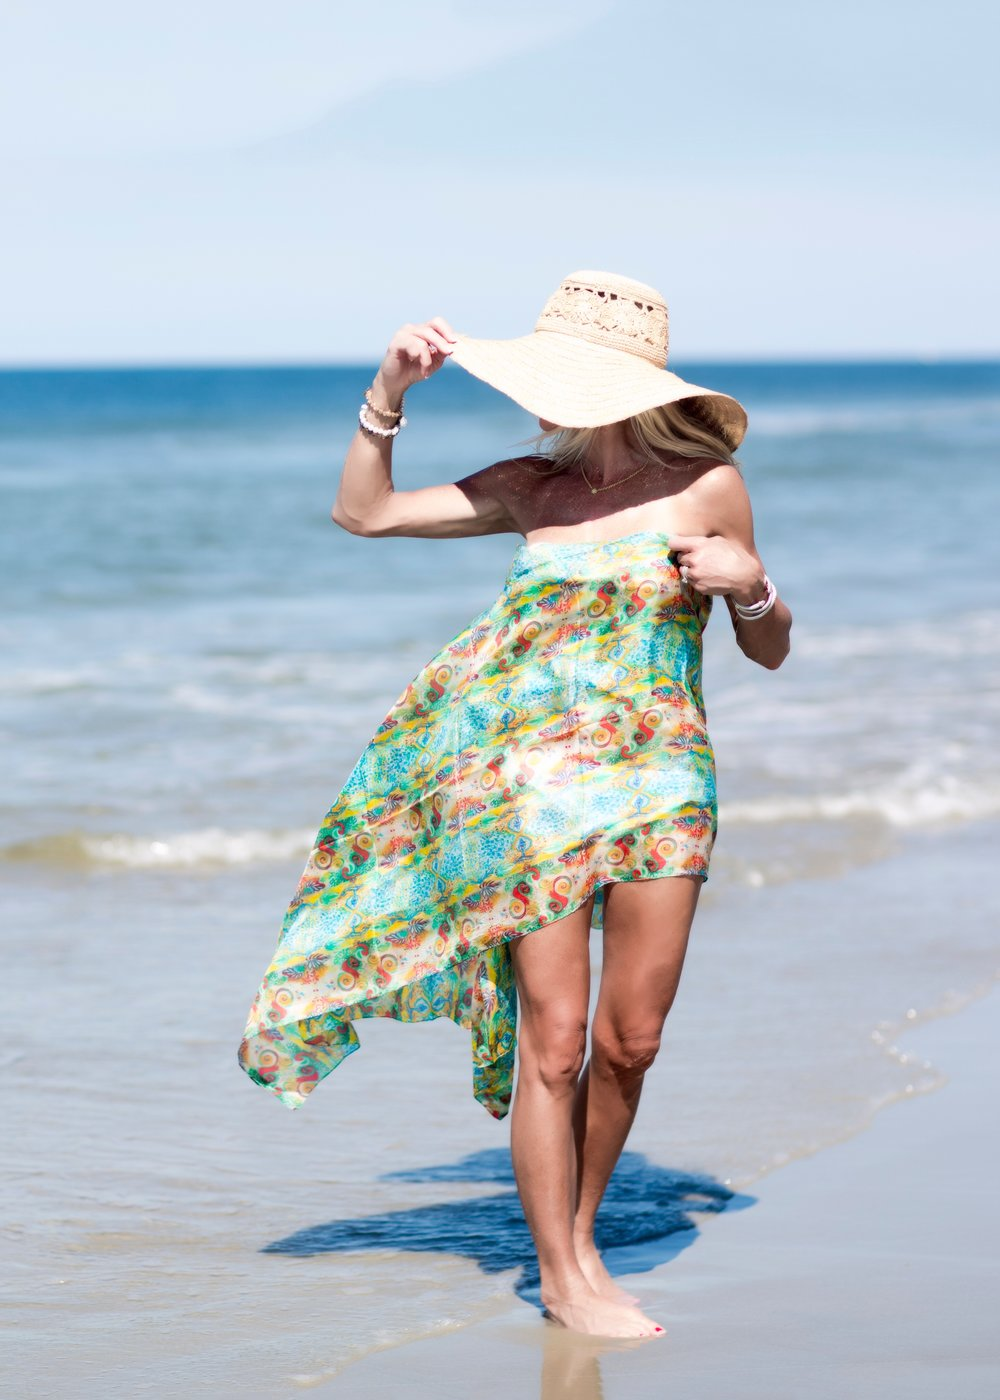 Héliquadrisme scarf used as a sarong on the beach